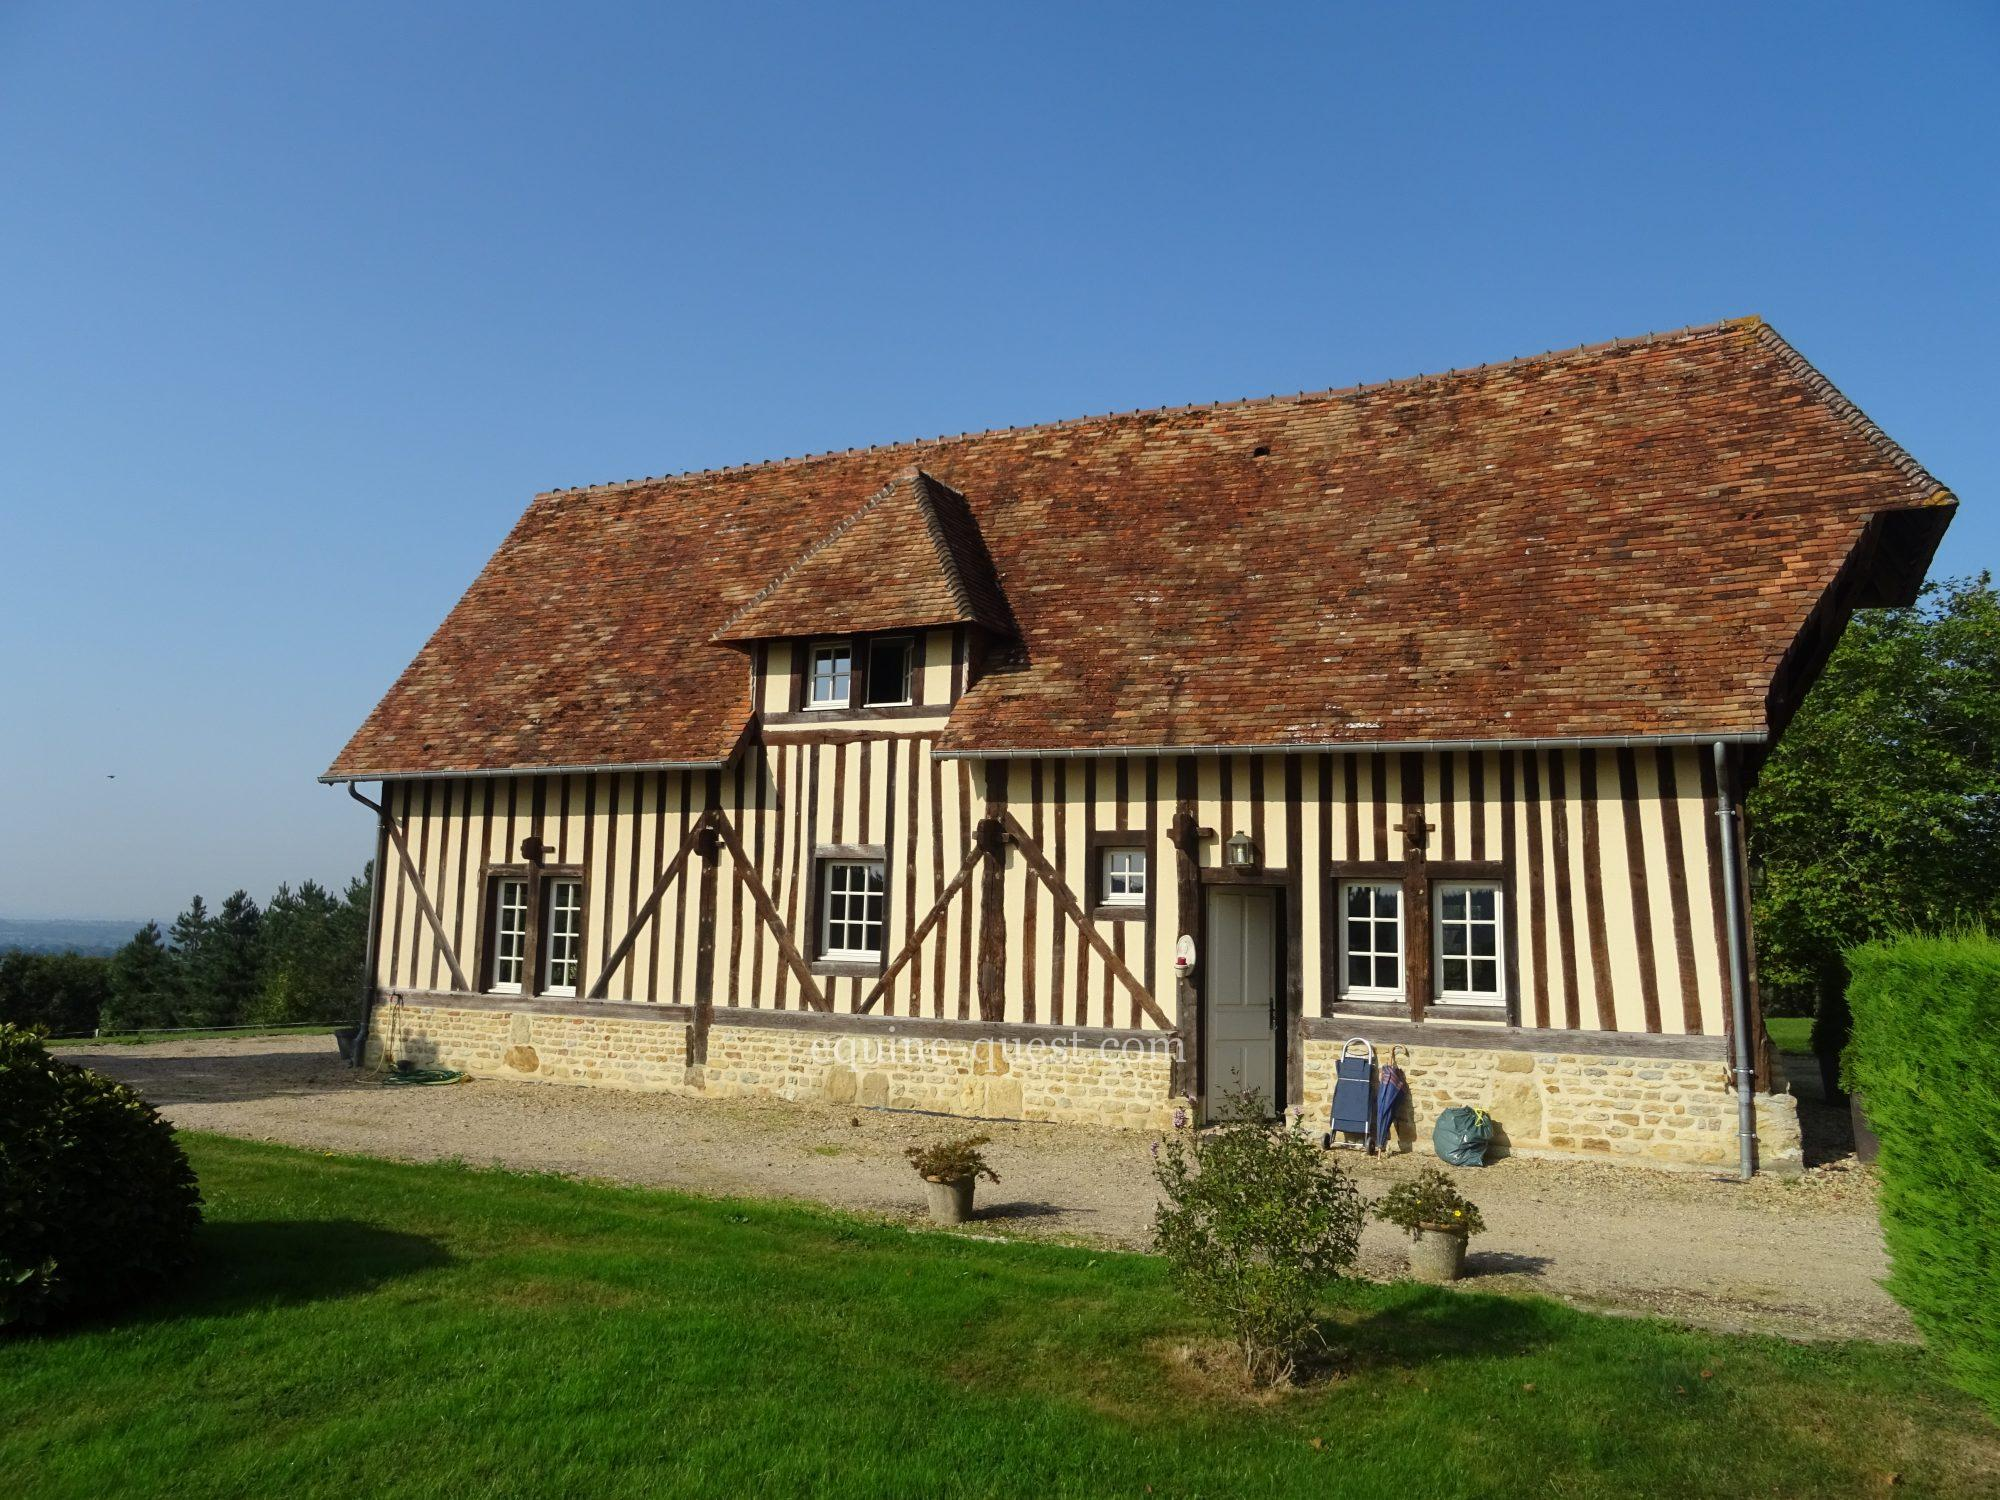 Normandy – Pays d'Auge area – Standing property